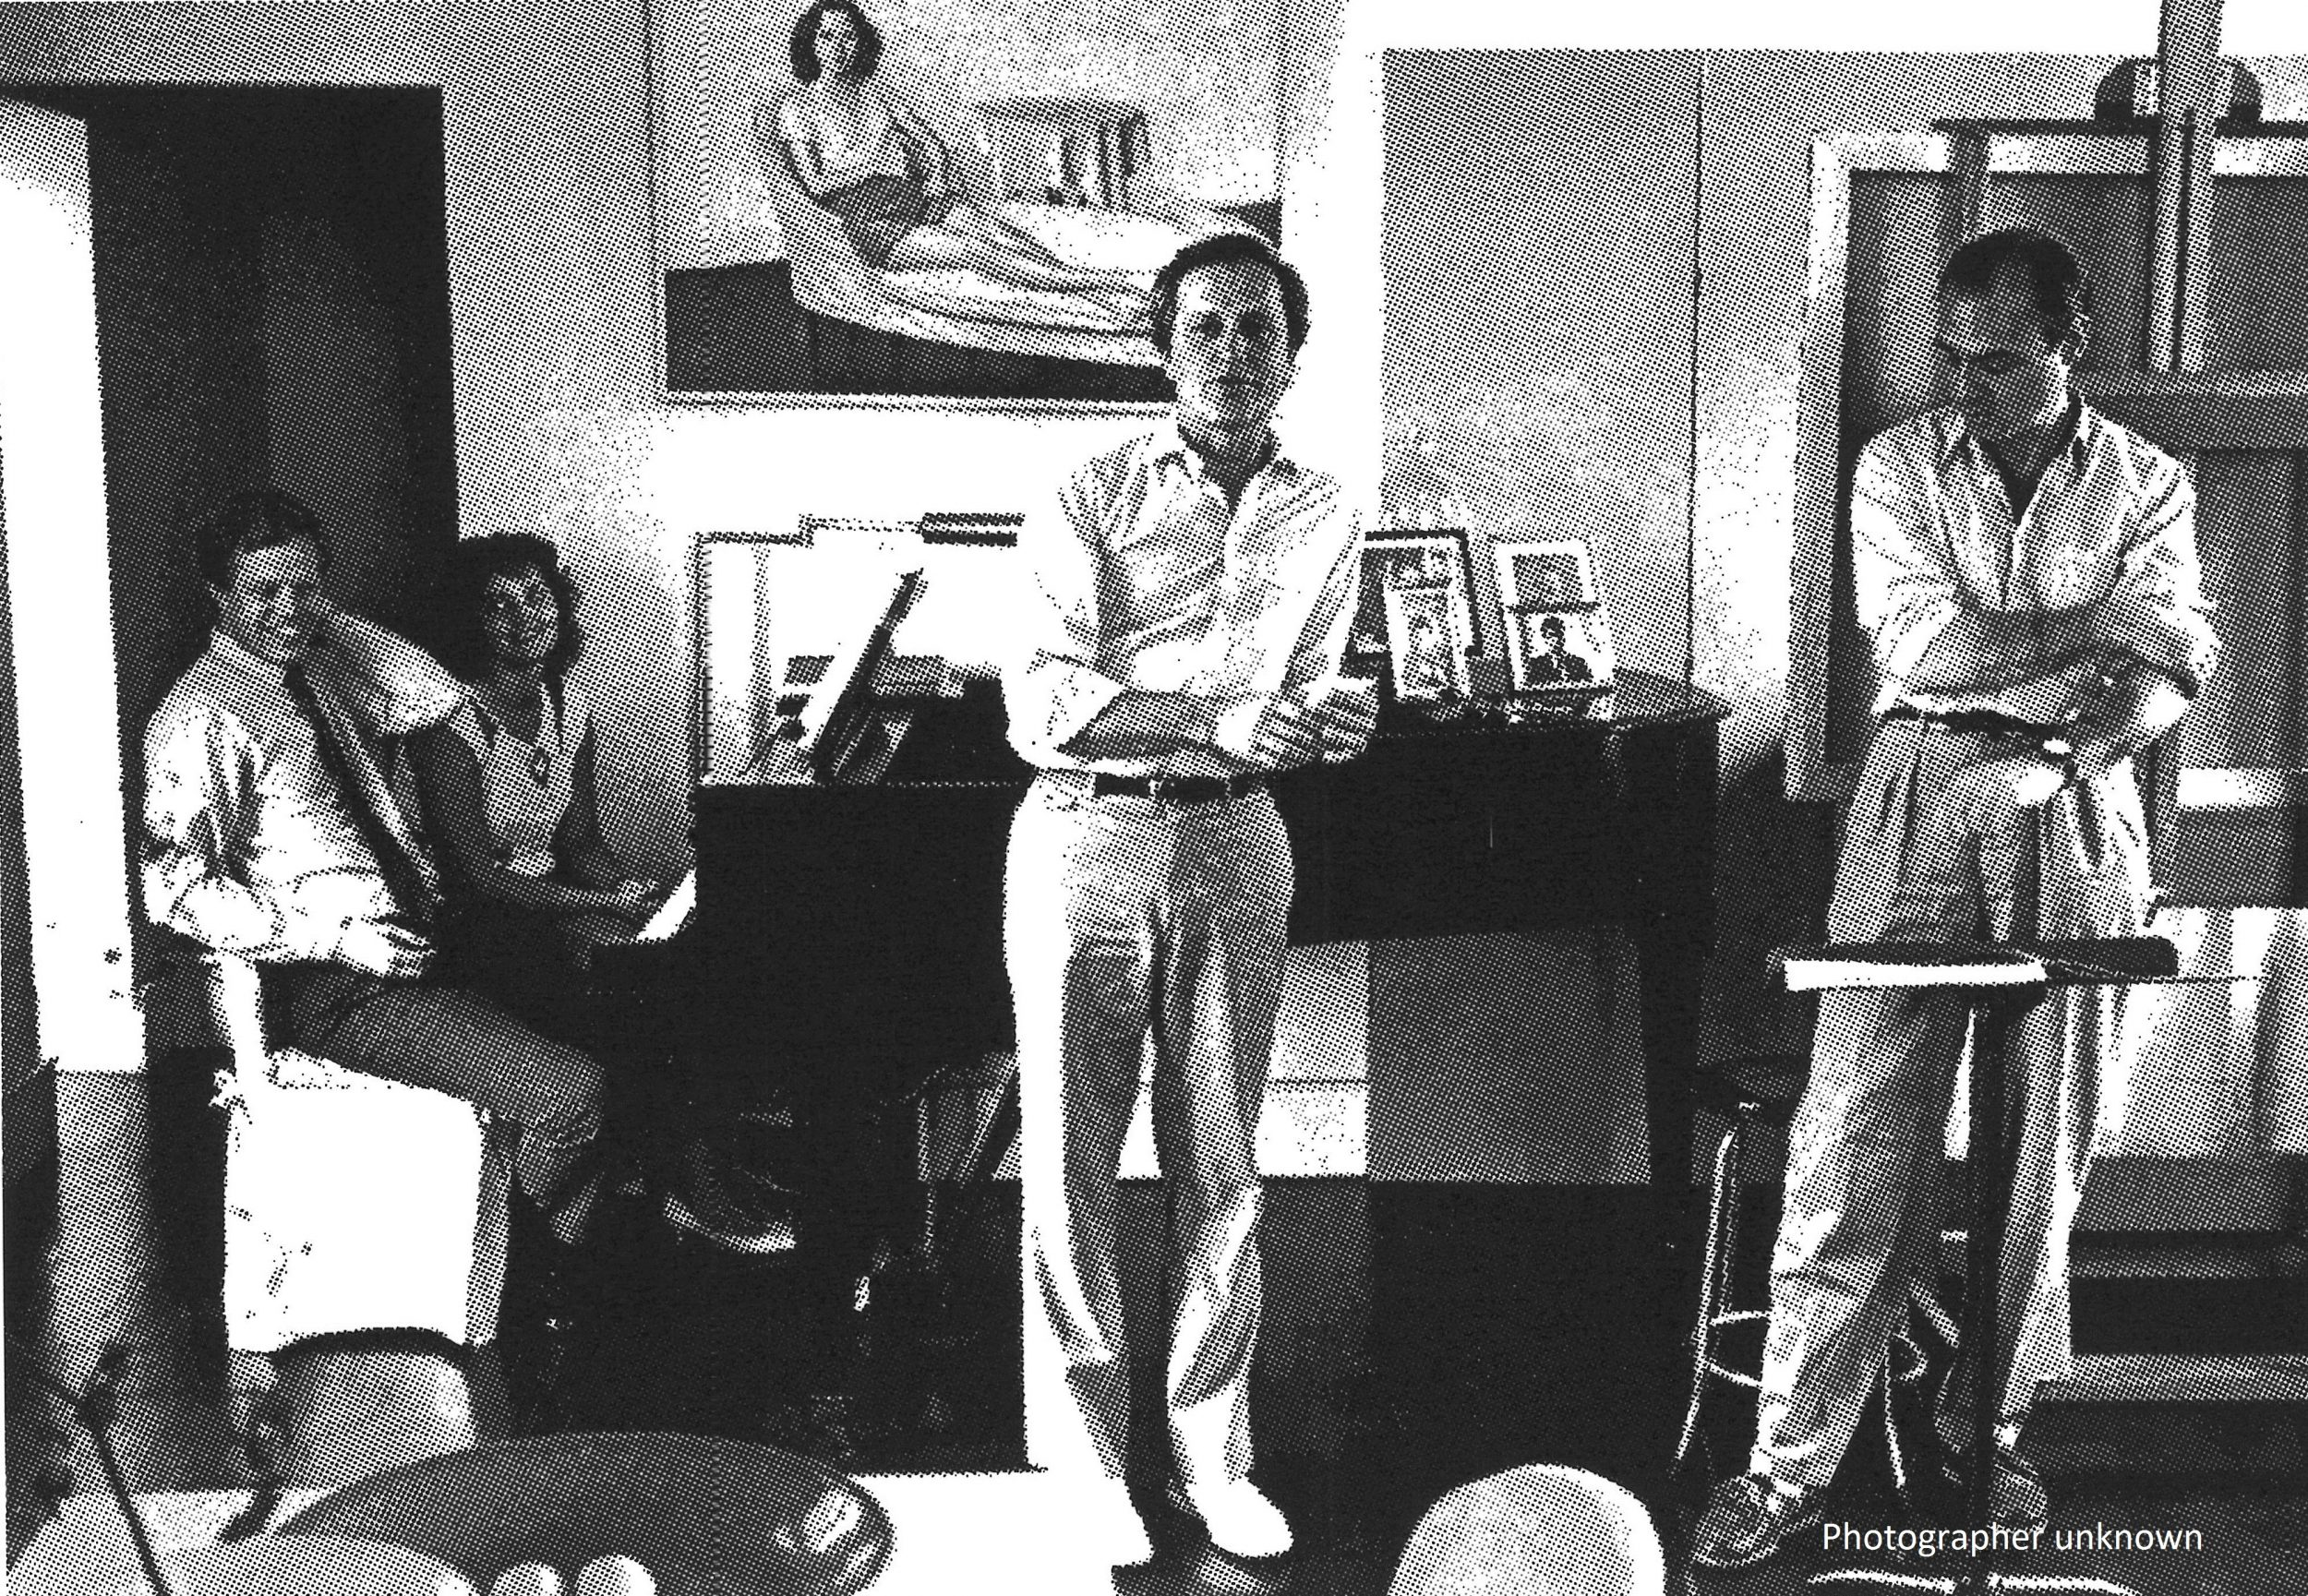 Paul Kellogg leans on a piano. There is a painting of a woman on the wall behind him. To his right and left are men. A woman sits at the piano